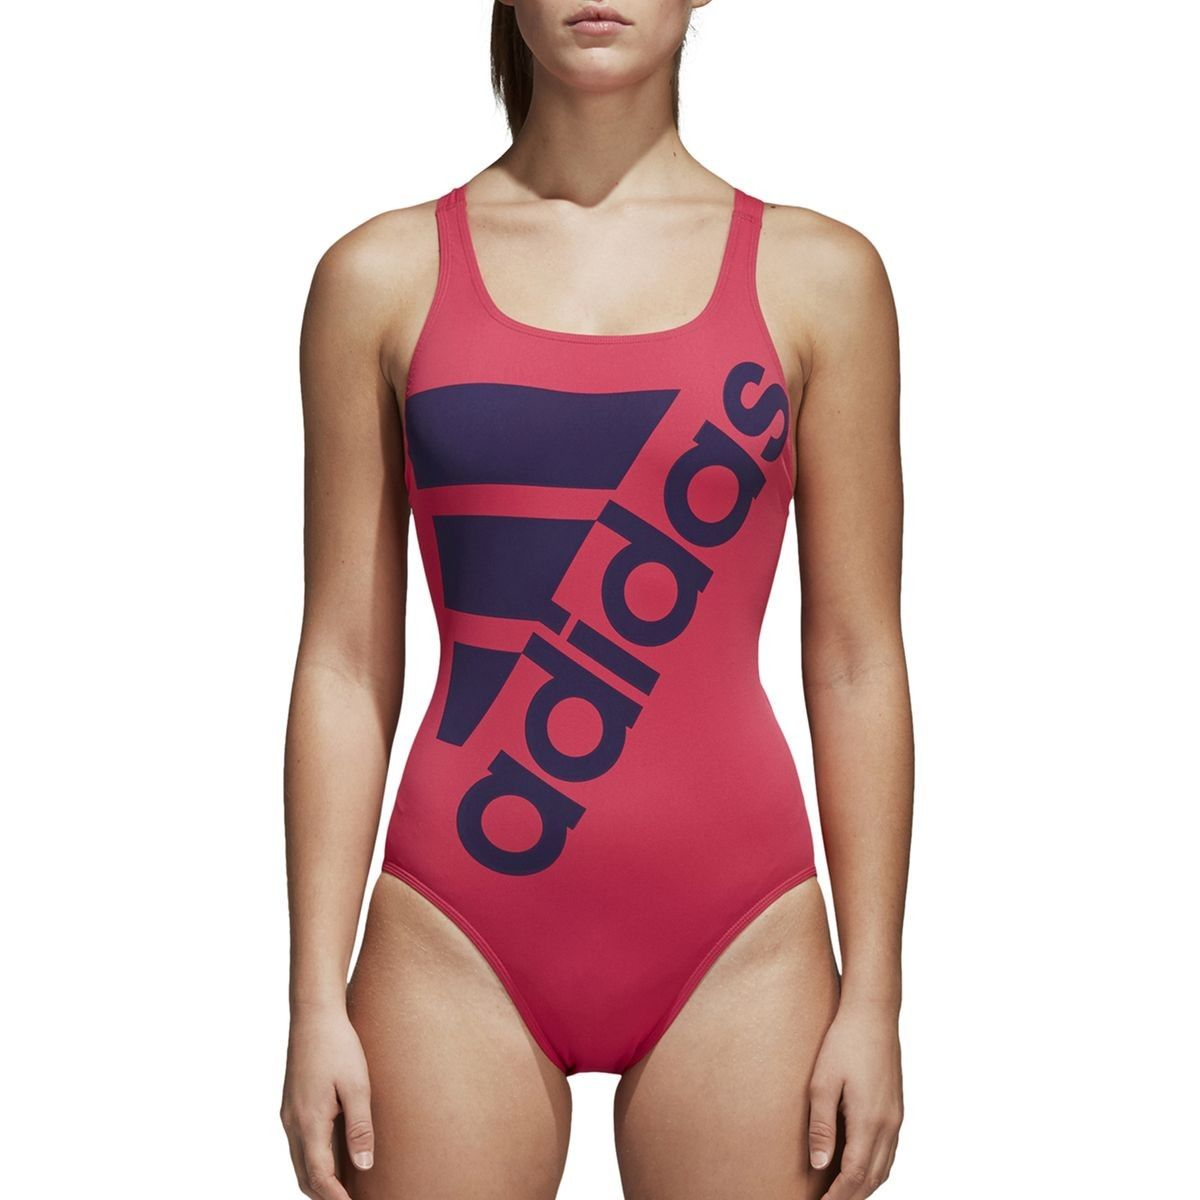 Maillot 1 Pièce Piscine Taille : 36;40;42;44;46 | Maillot